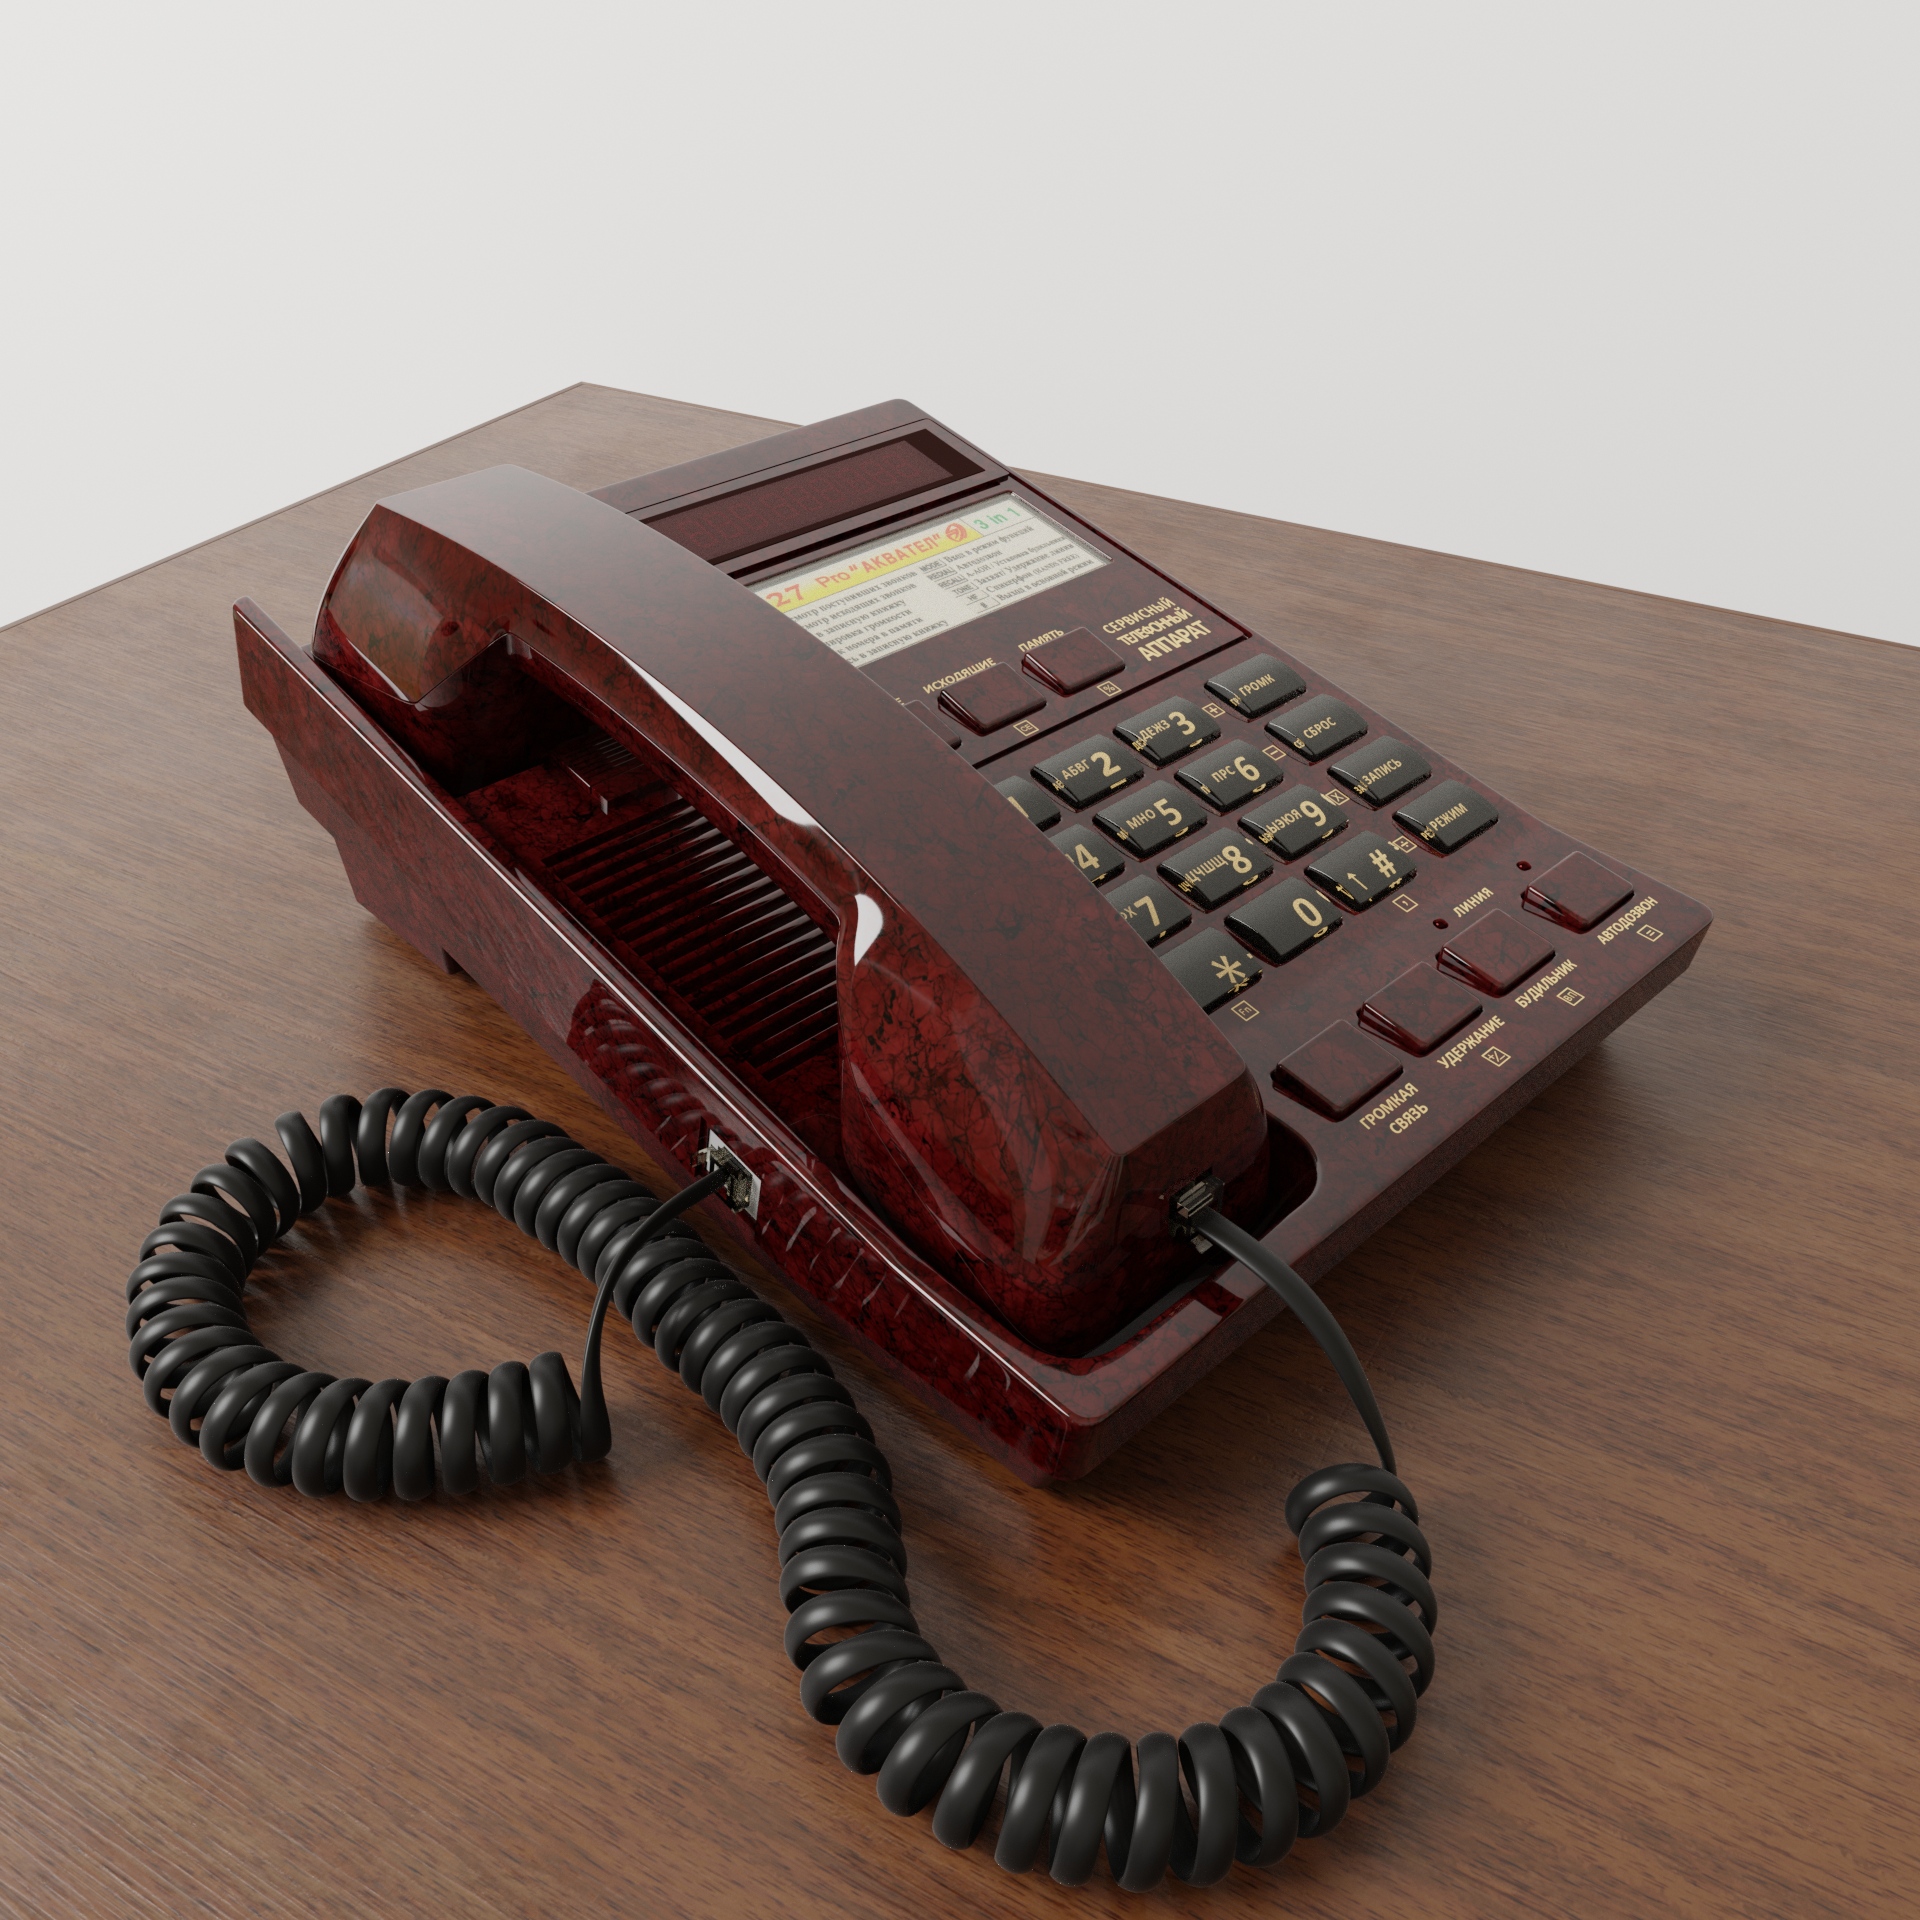 Telephone P-27 preview image 2